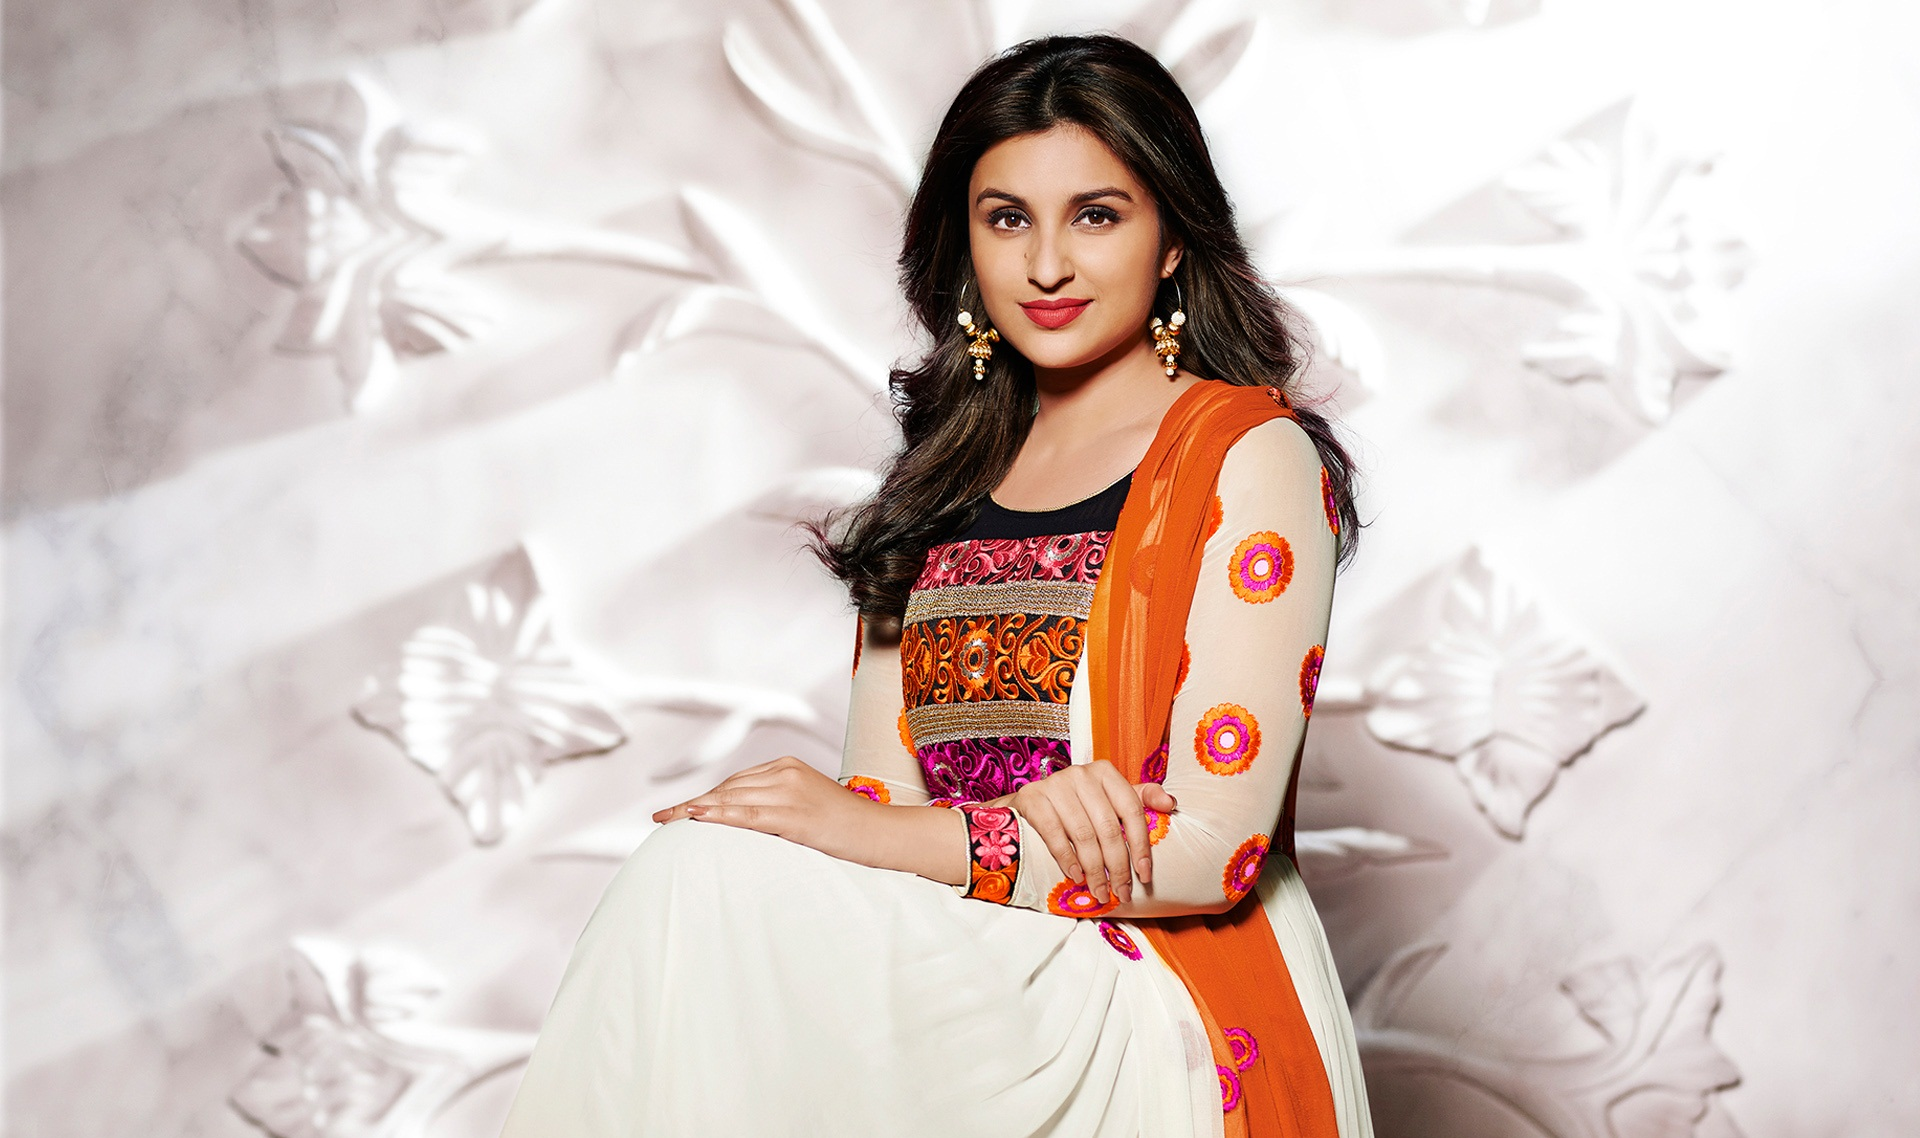 beautiful parineeti chopra homely style background mobile hd desktop images free